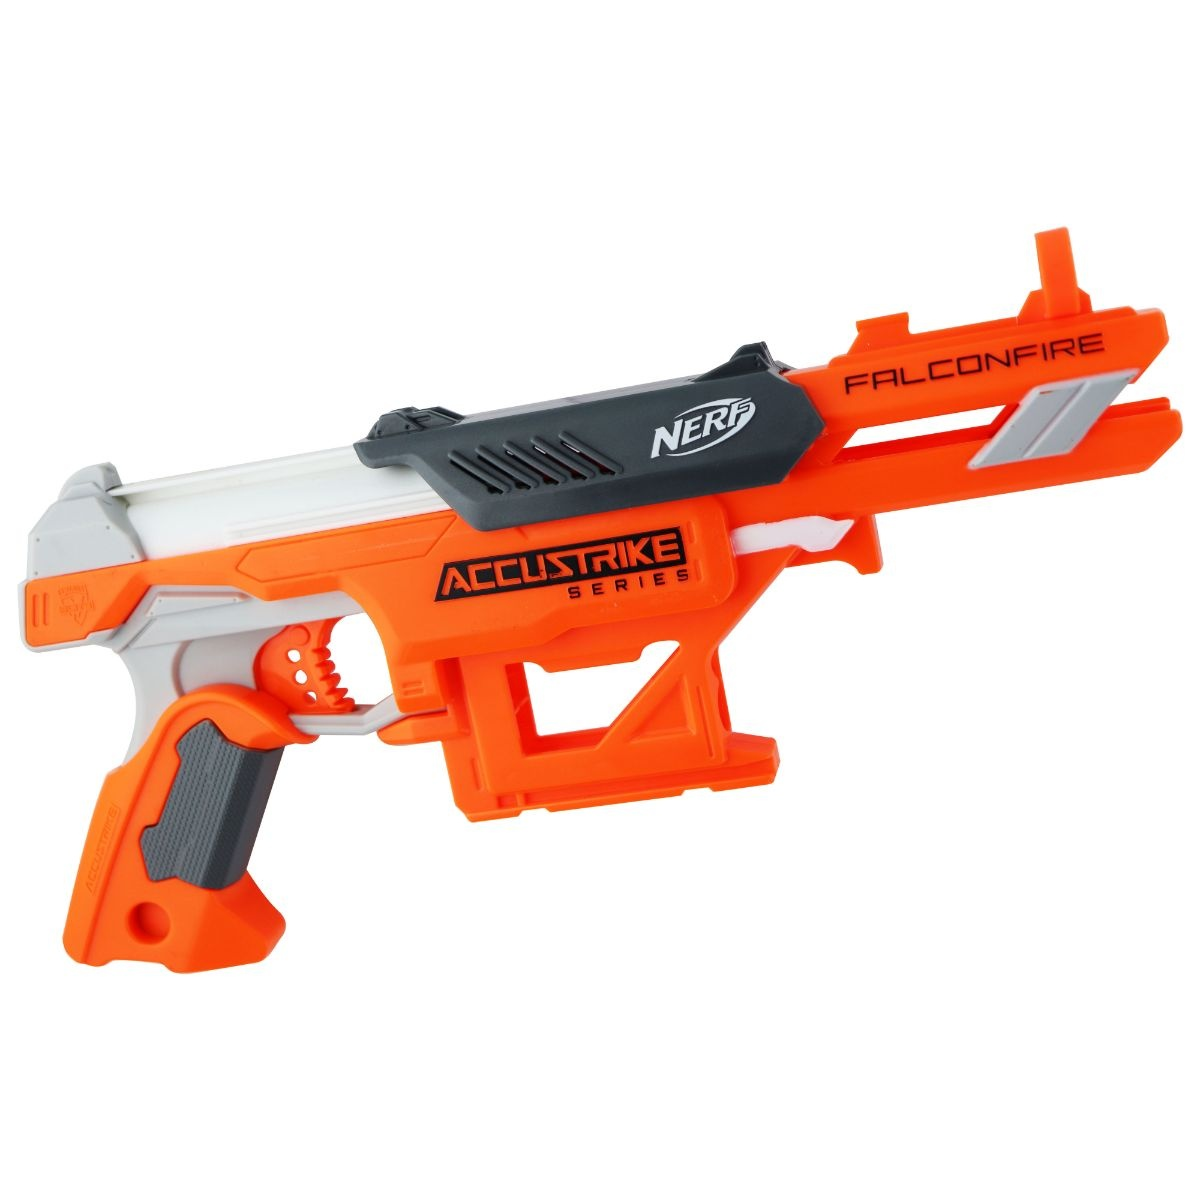 Nerf N-Strike Elite AccuStrike Series Falcon Fire Blaster - Orange / Gray